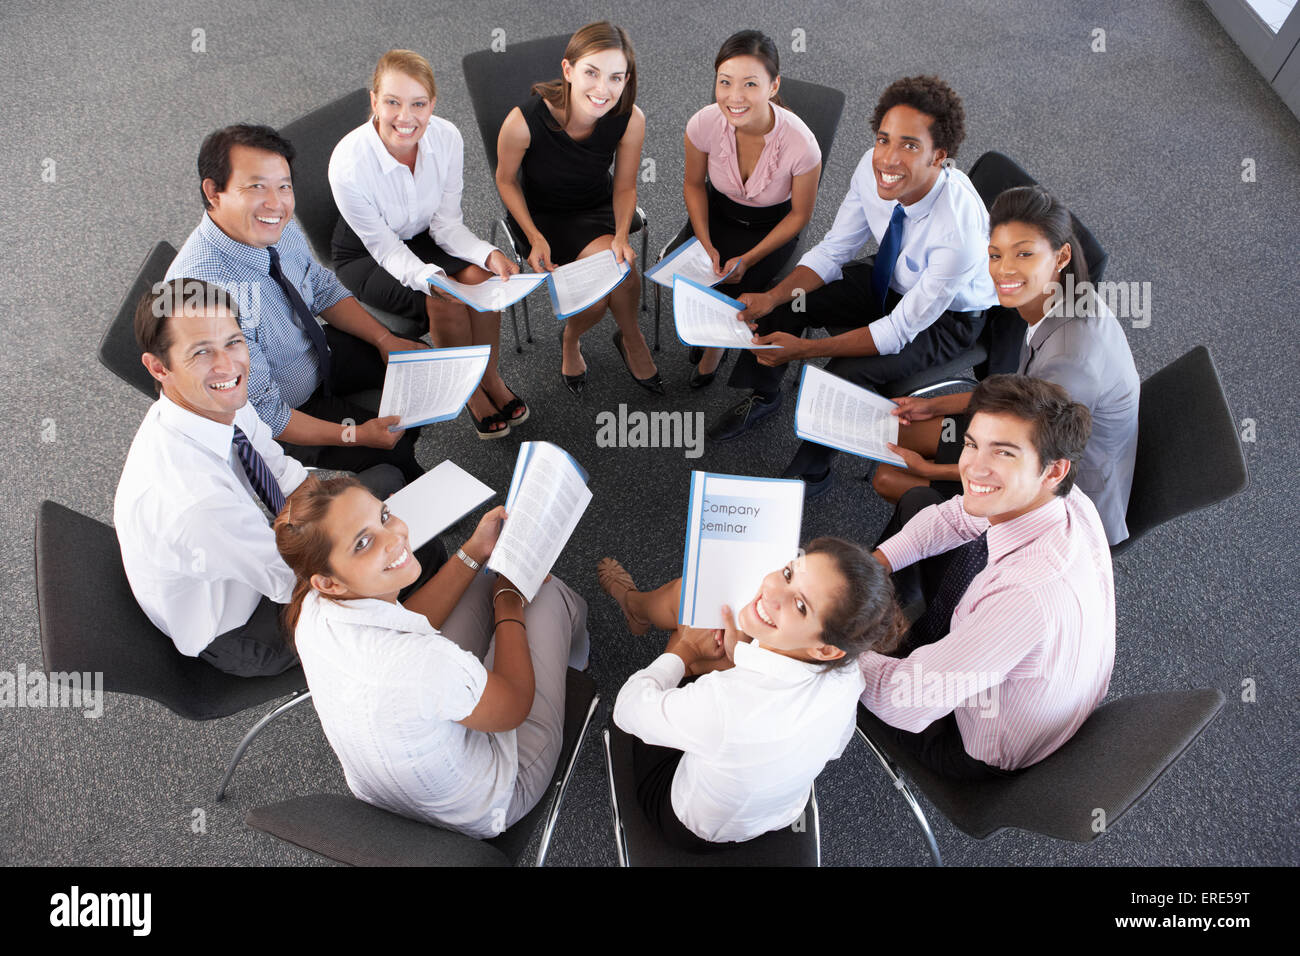 Overhead View Of Businesspeople Seated In Circle At Company Seminar - Stock Image